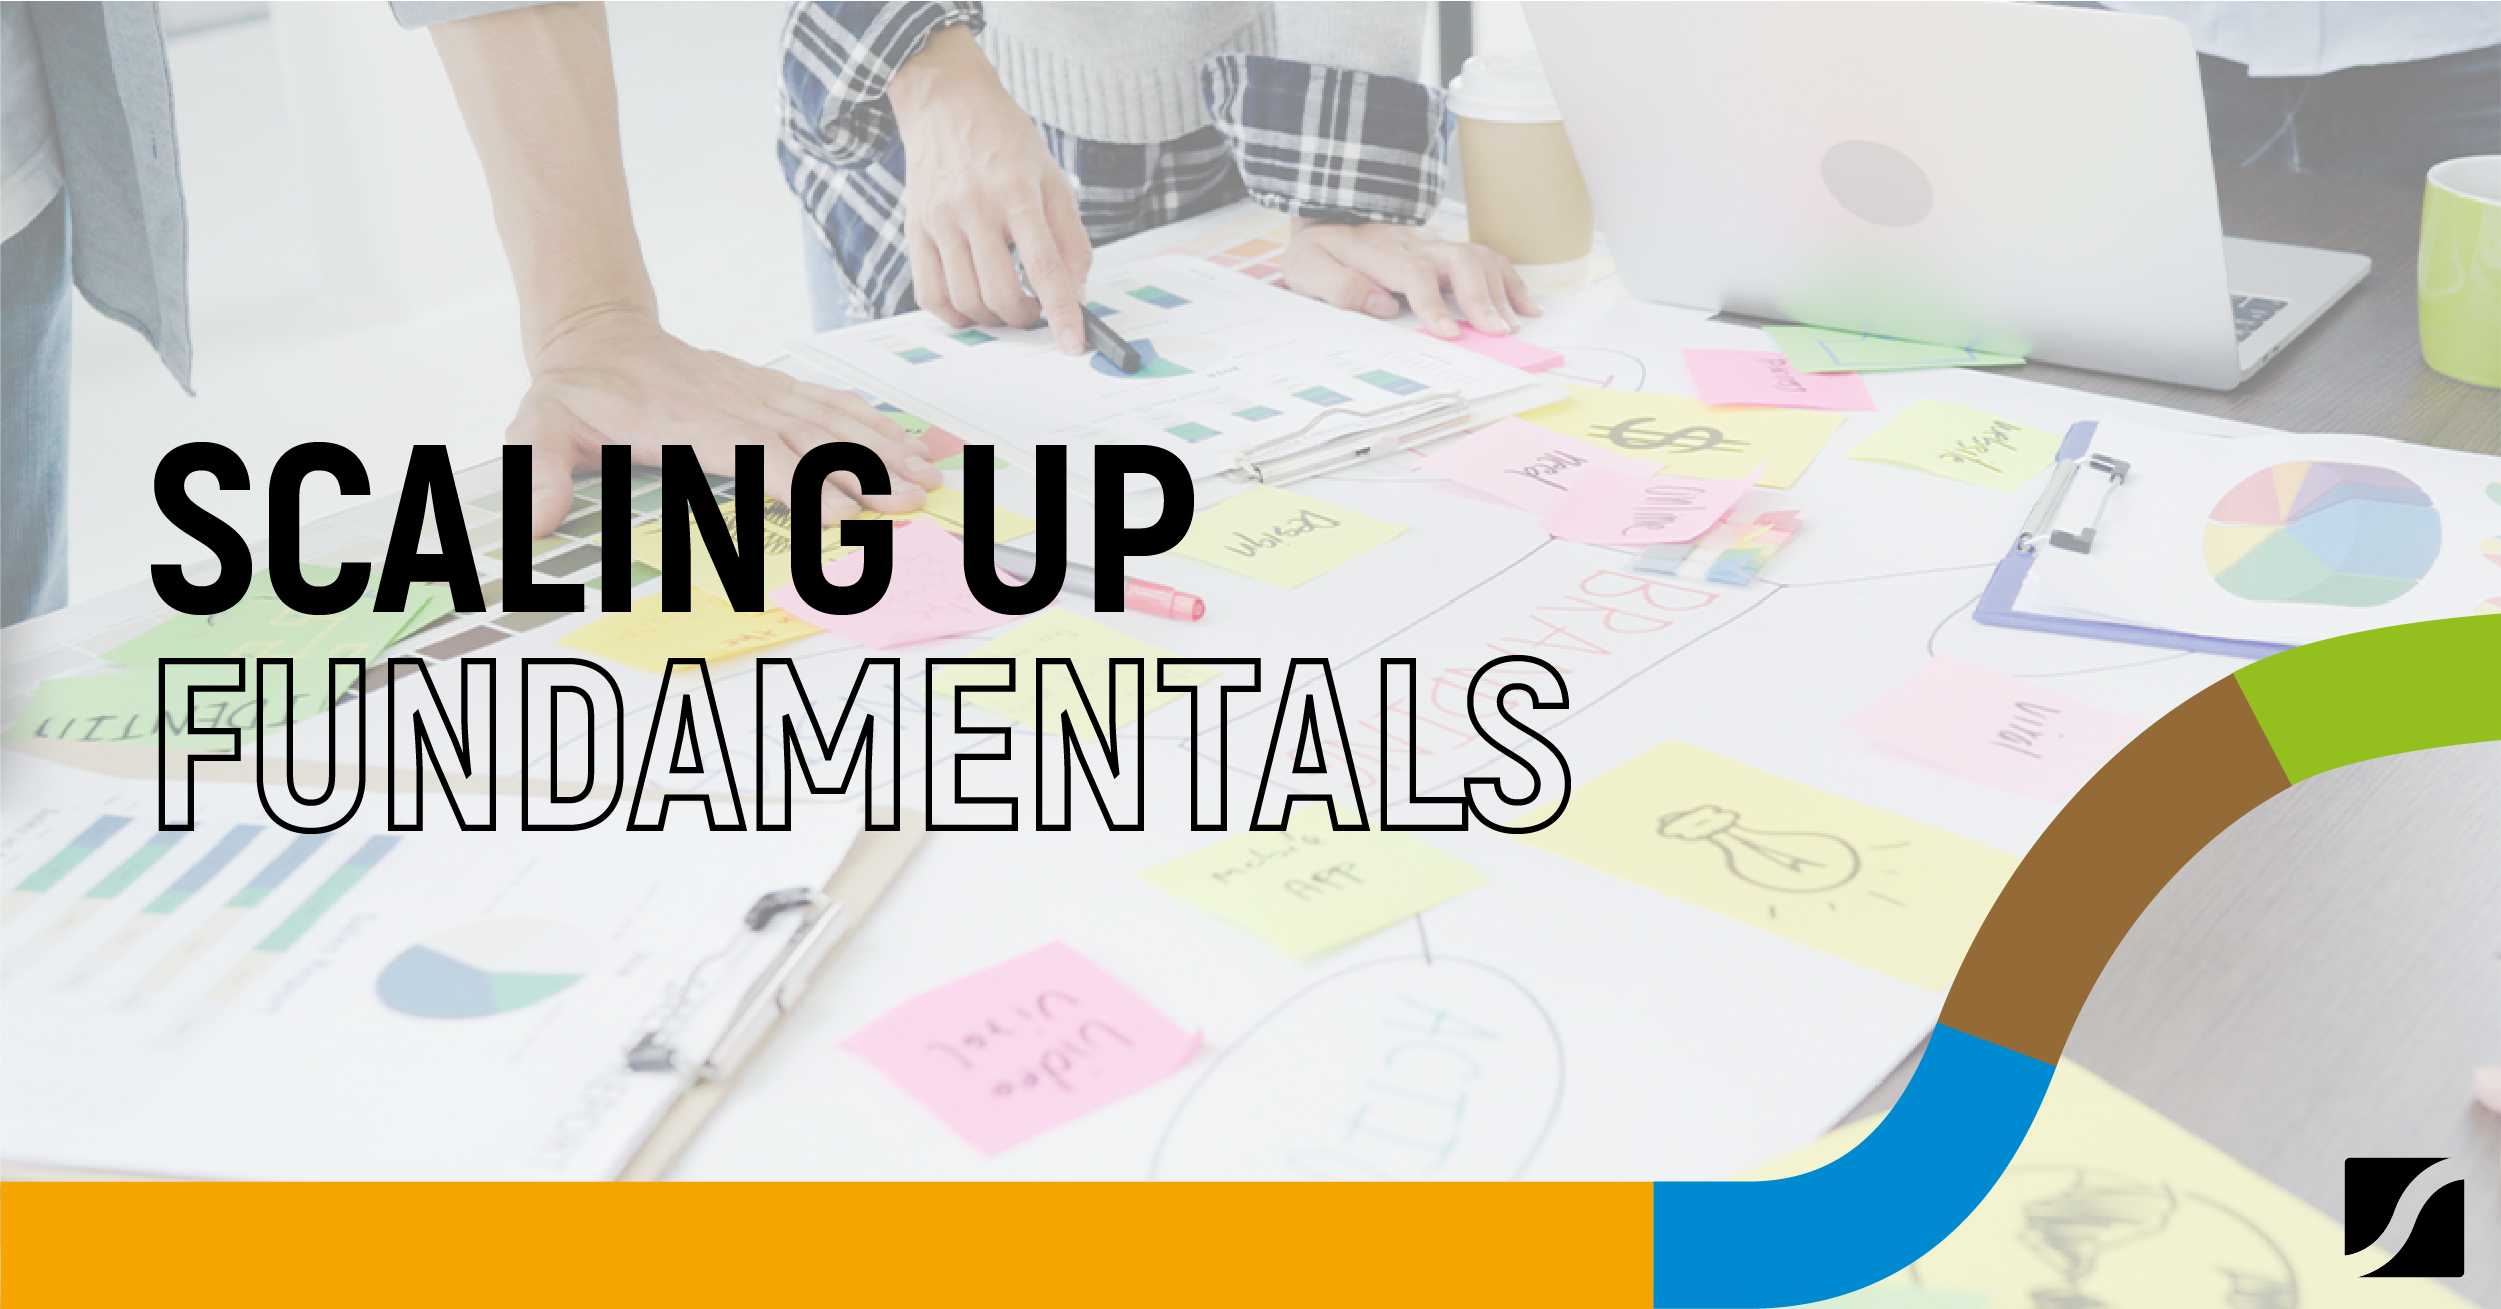 The Fundamentals You Need To Scale Up Effectively In 2021